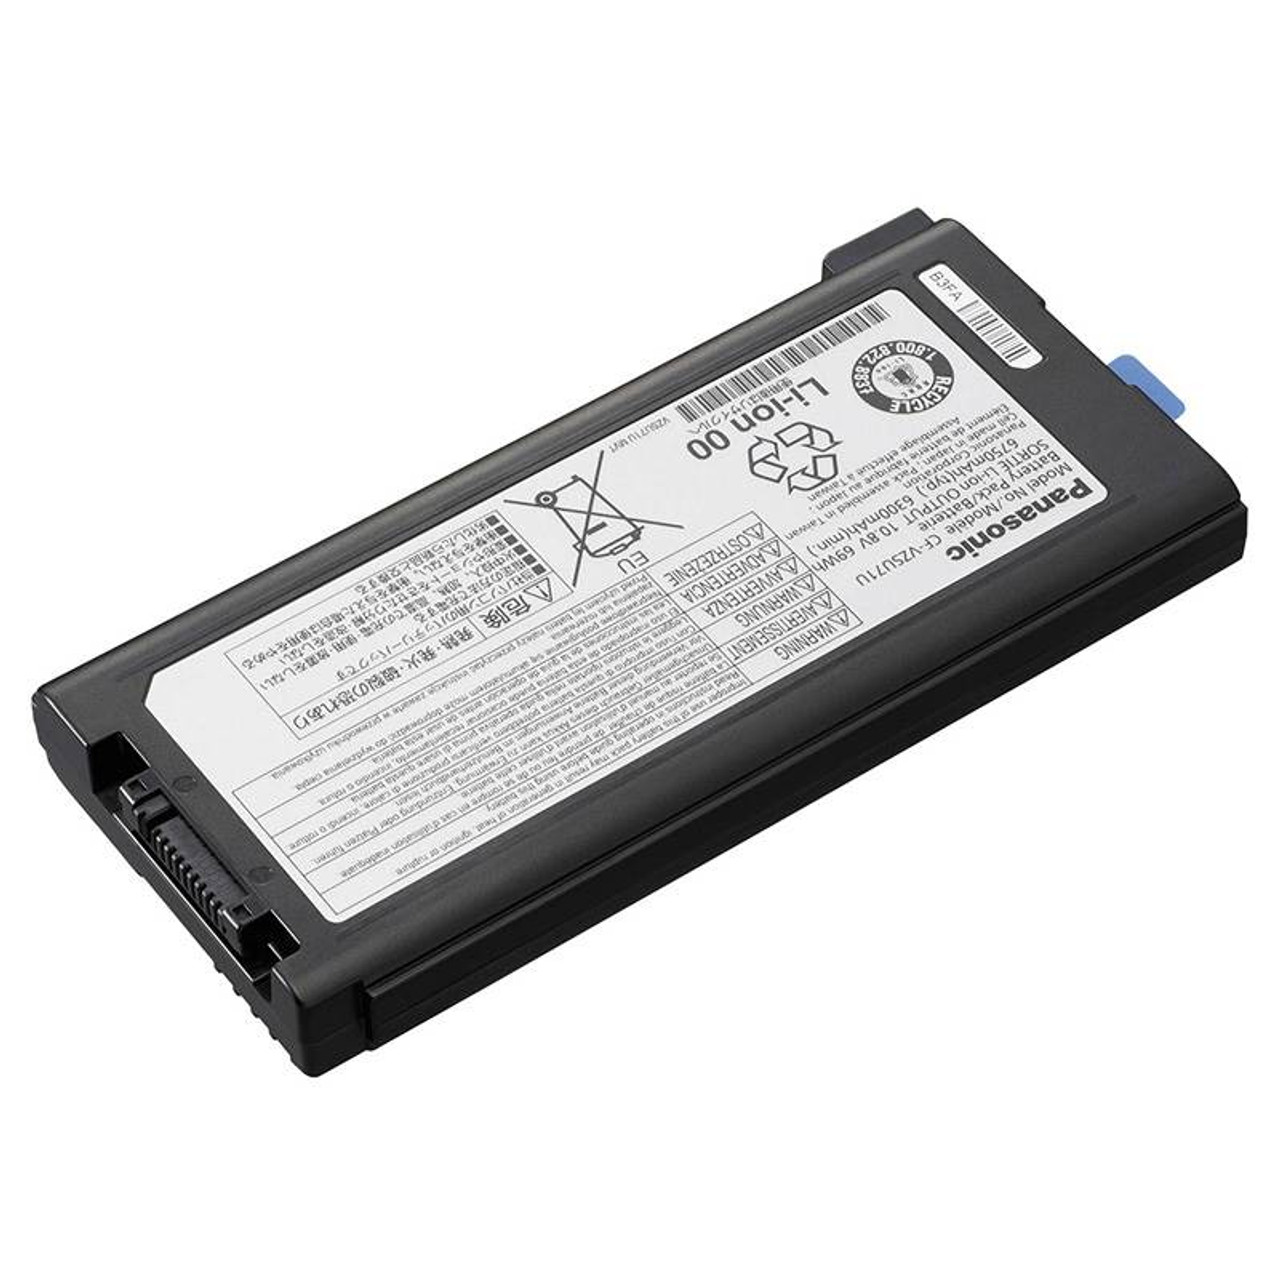 Image for Panasonic Long Life 9-Cell Battery for CF-53 CX Computer Superstore